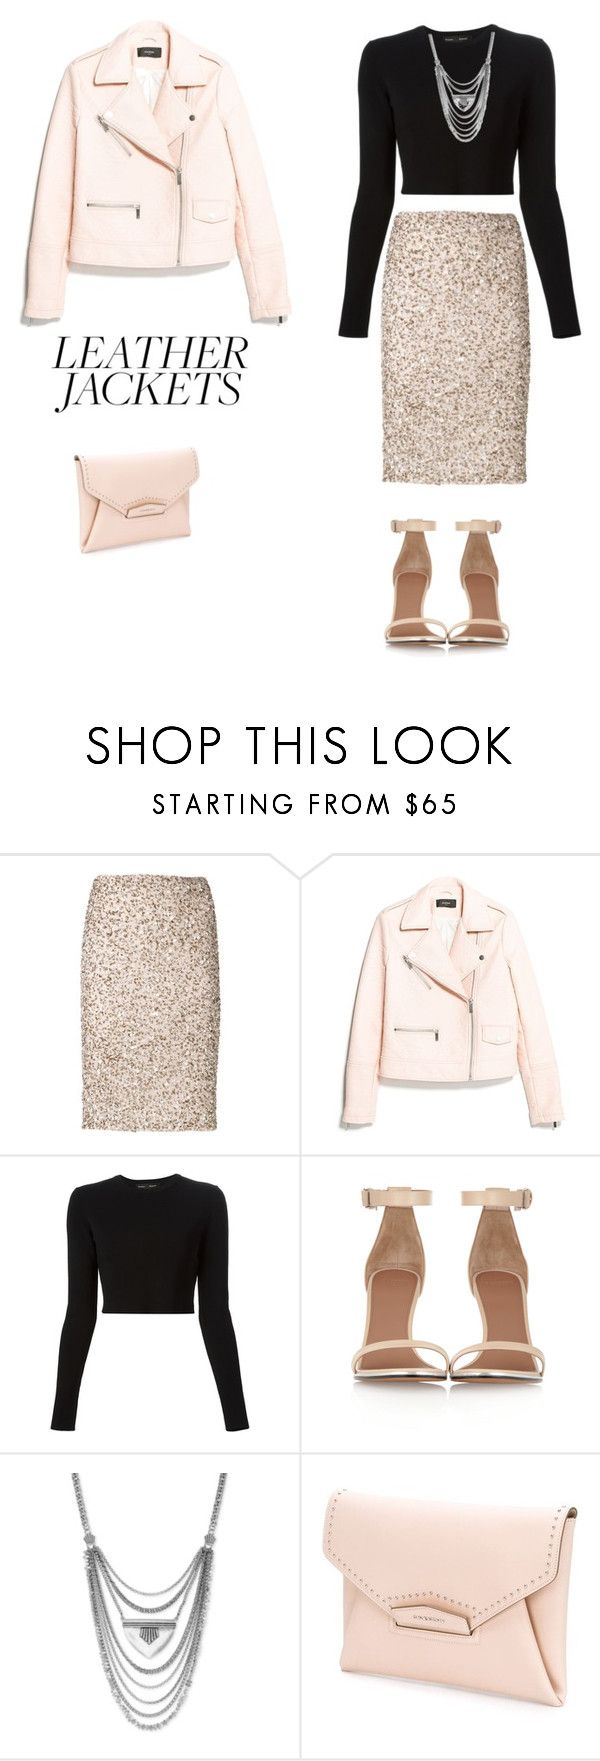 """""""Cool girl style: Leather Jackets"""" by sebolita ❤ liked on Polyvore featuring Alice + Olivia, MANGO, Proenza Schouler, Givenchy and Lucky Brand"""